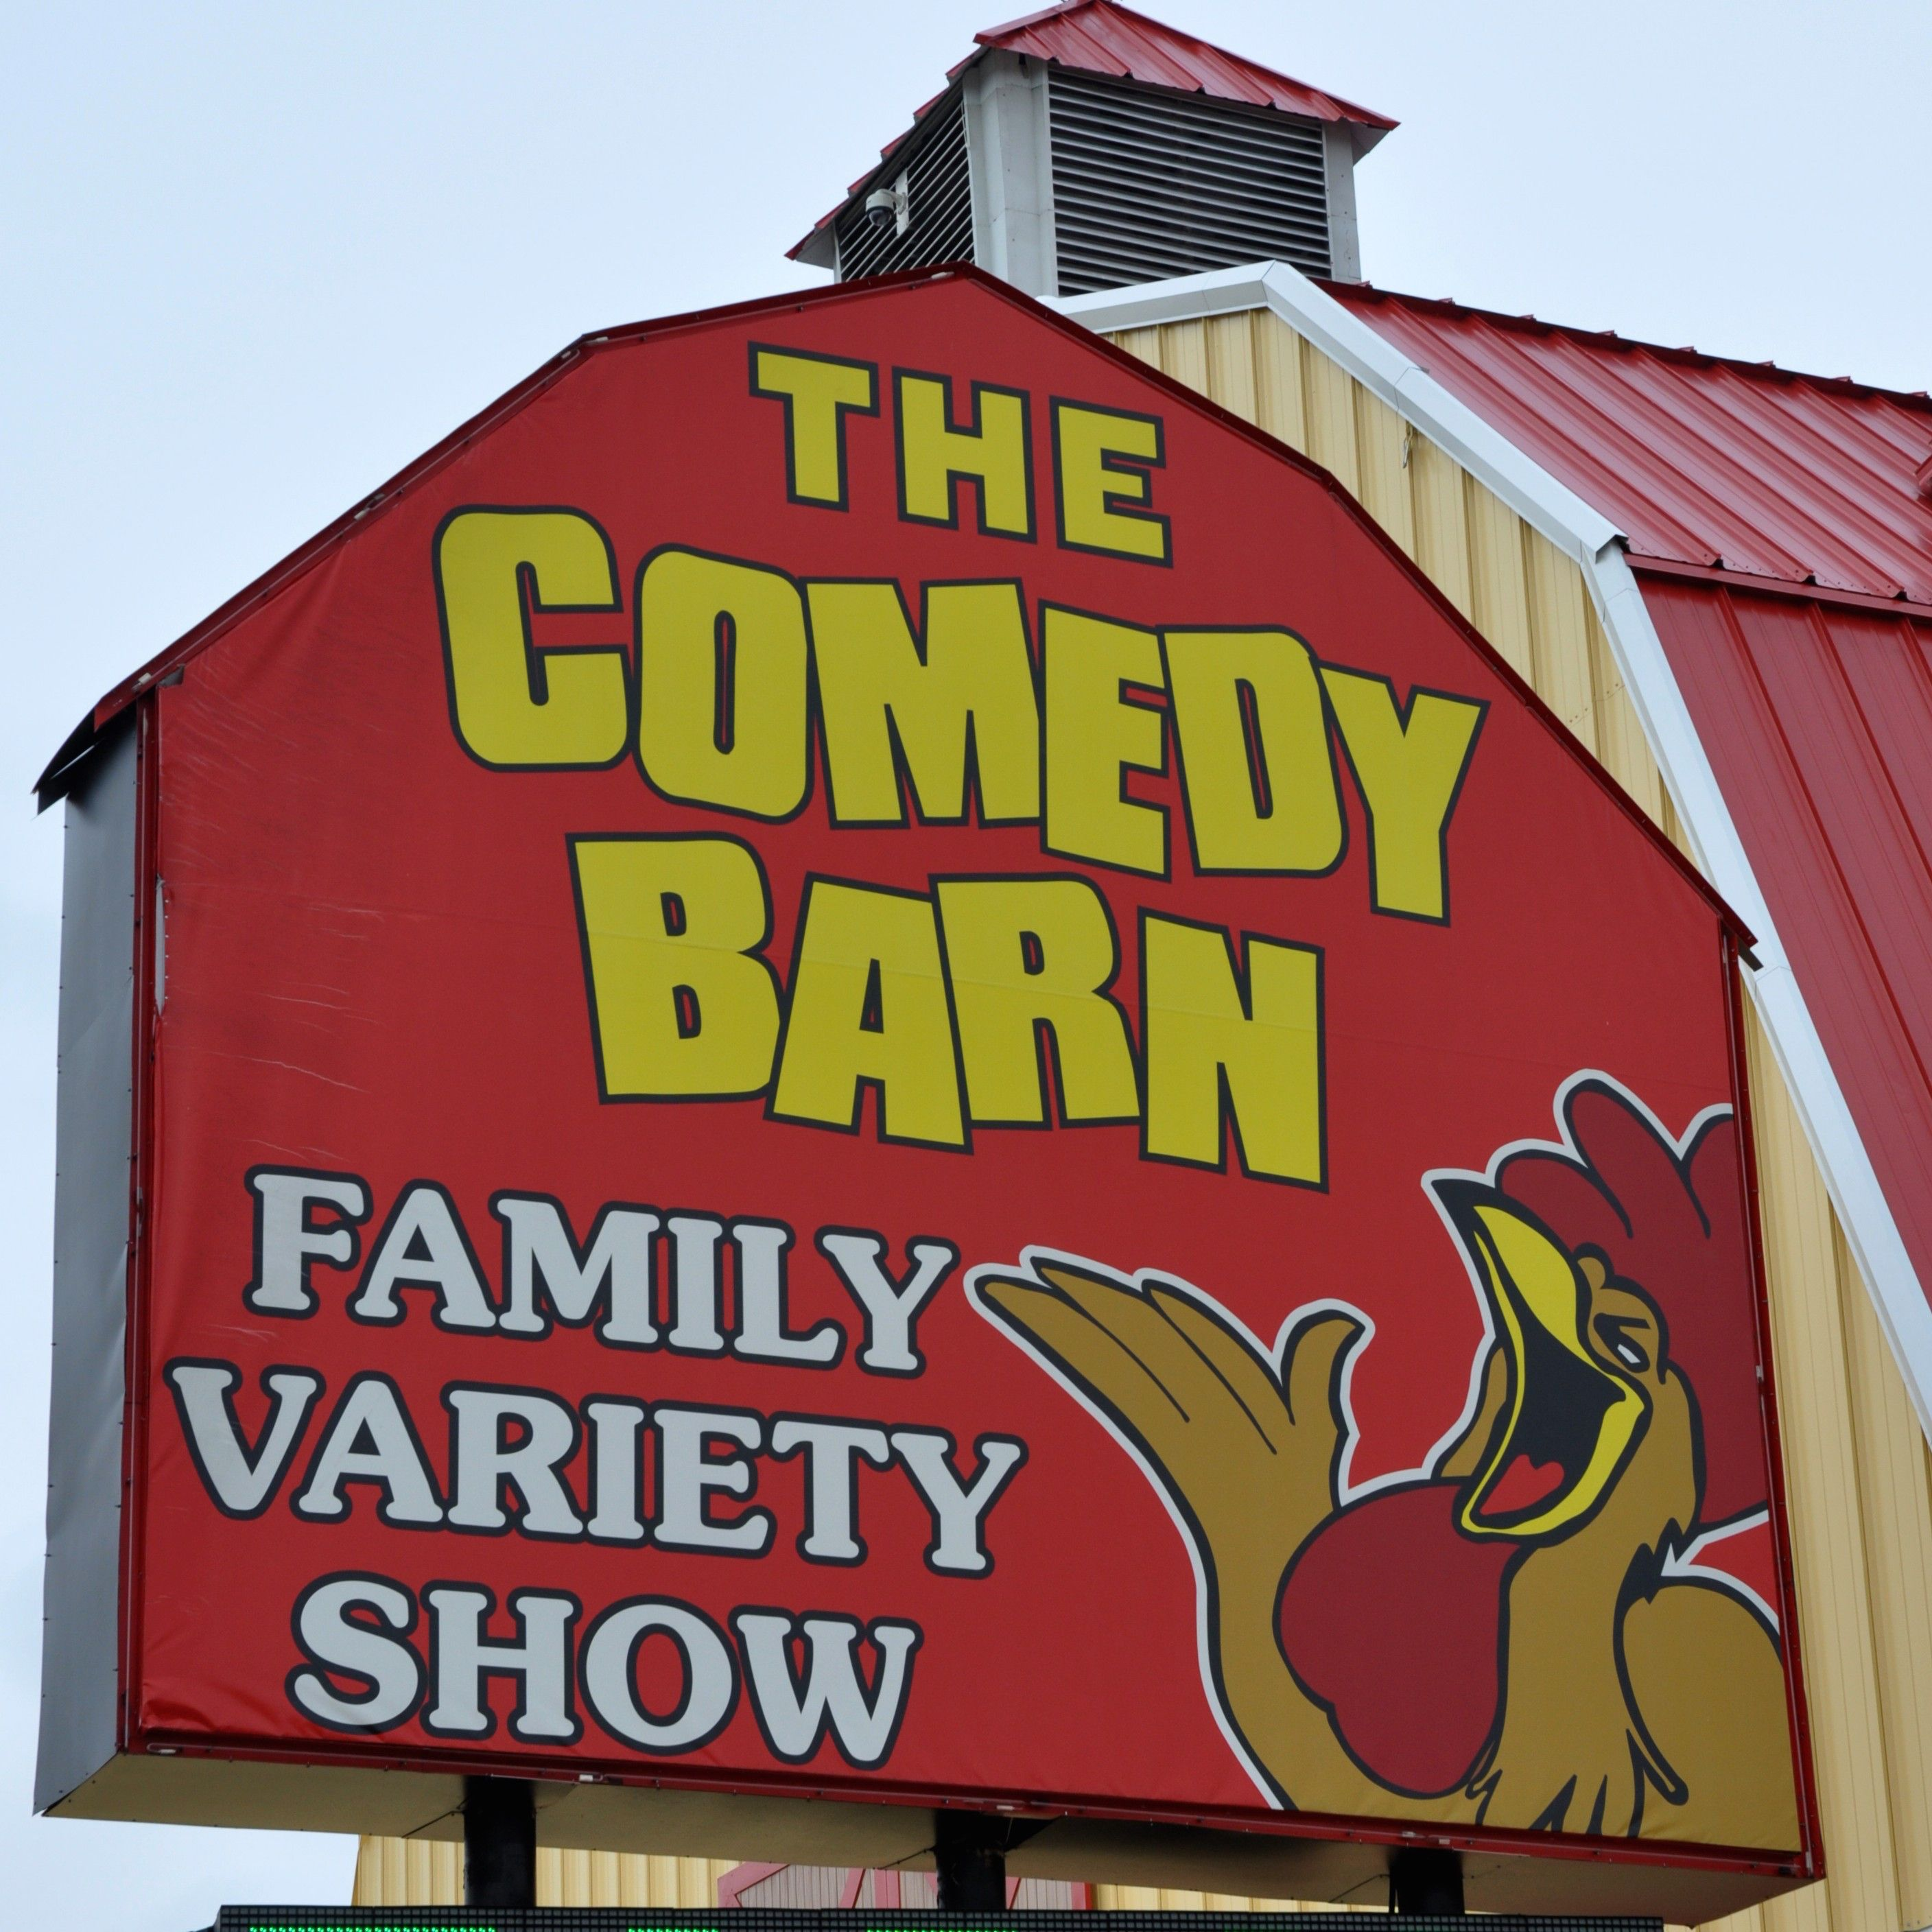 The Comedy Barn - This family variety show is fun for everyone!